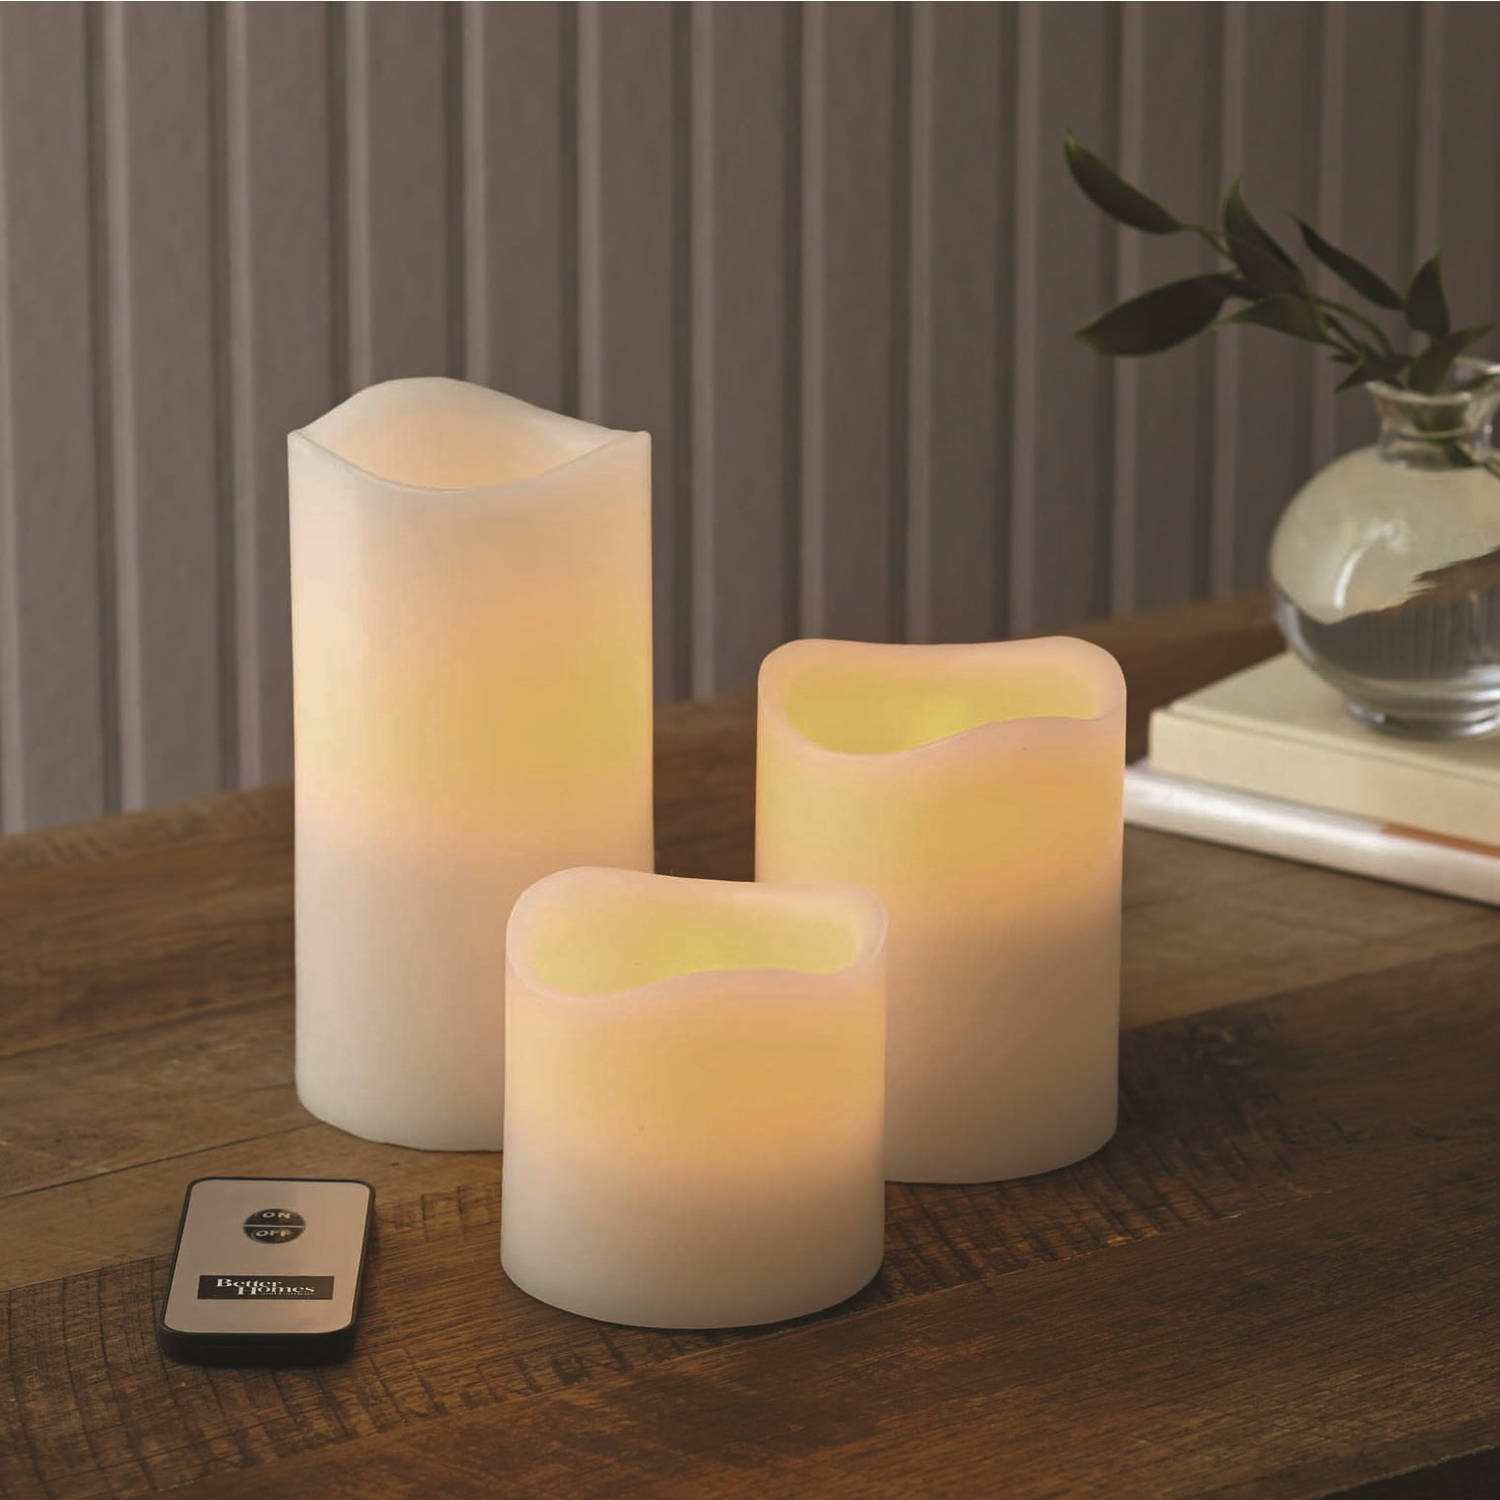 Better Homes and Gardens Flameless LED Pillar Candles, 3pk, Vanilla